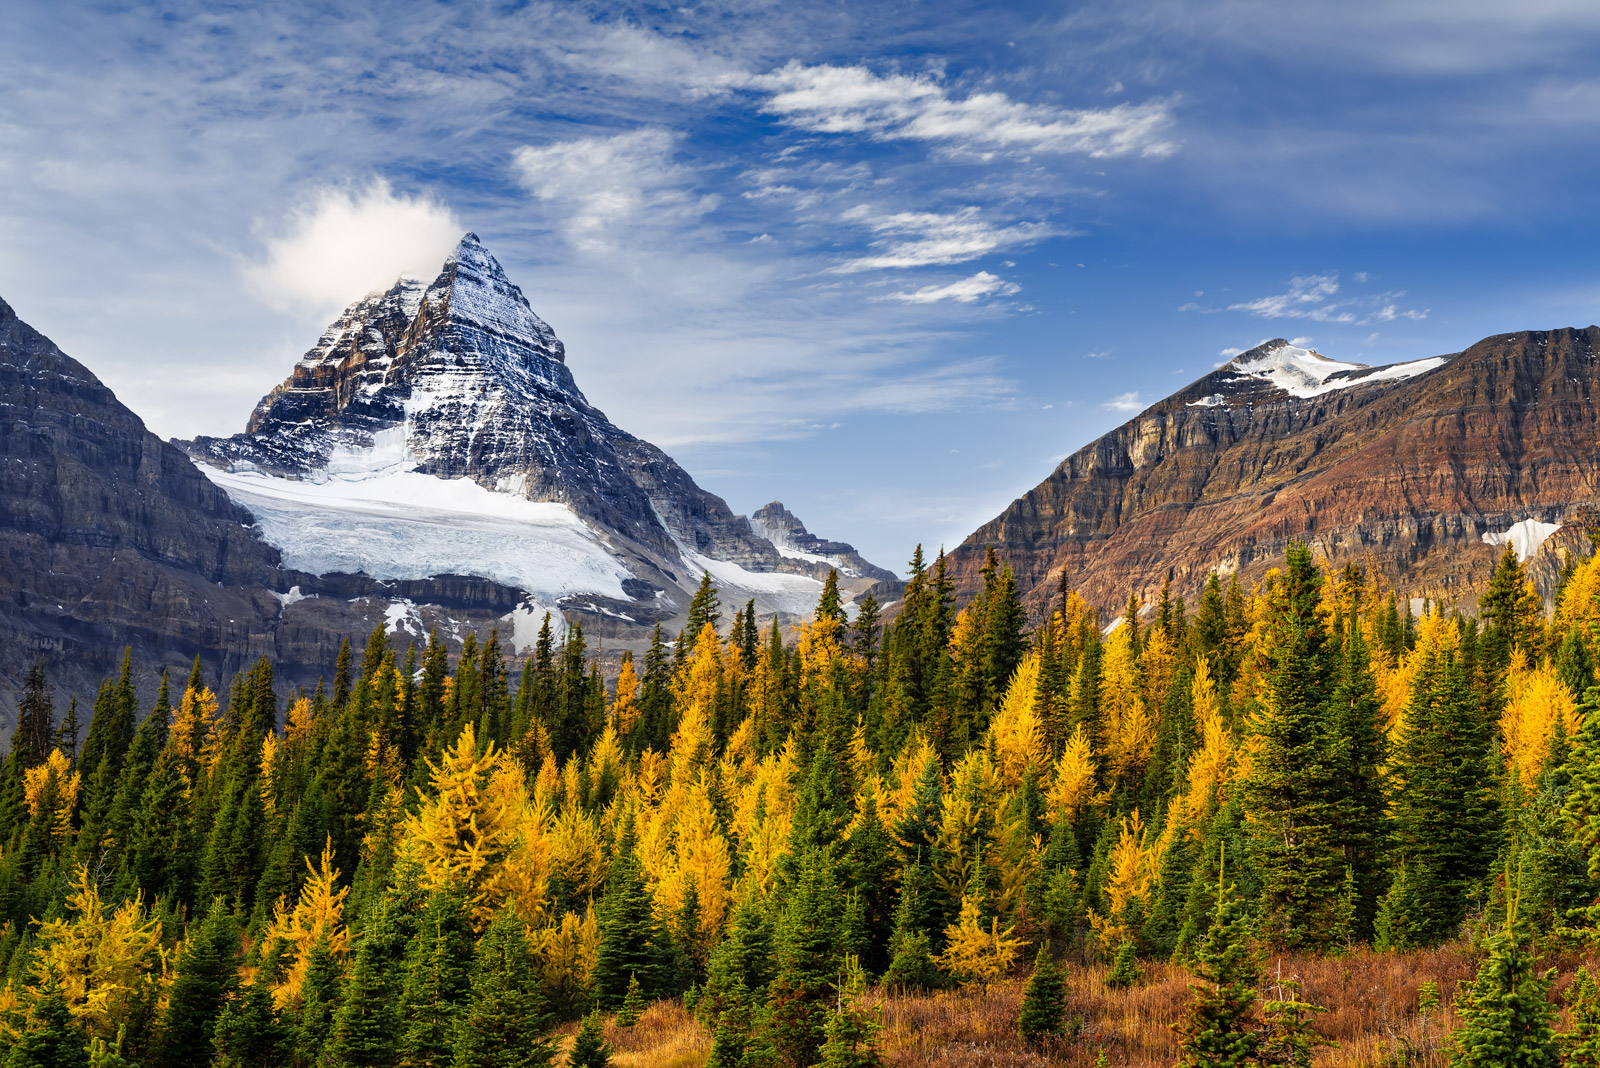 A Limited Edition photograph of Larch trees near Mount Assiniboine in the Canadian Rockies displaying their fall colors in front...